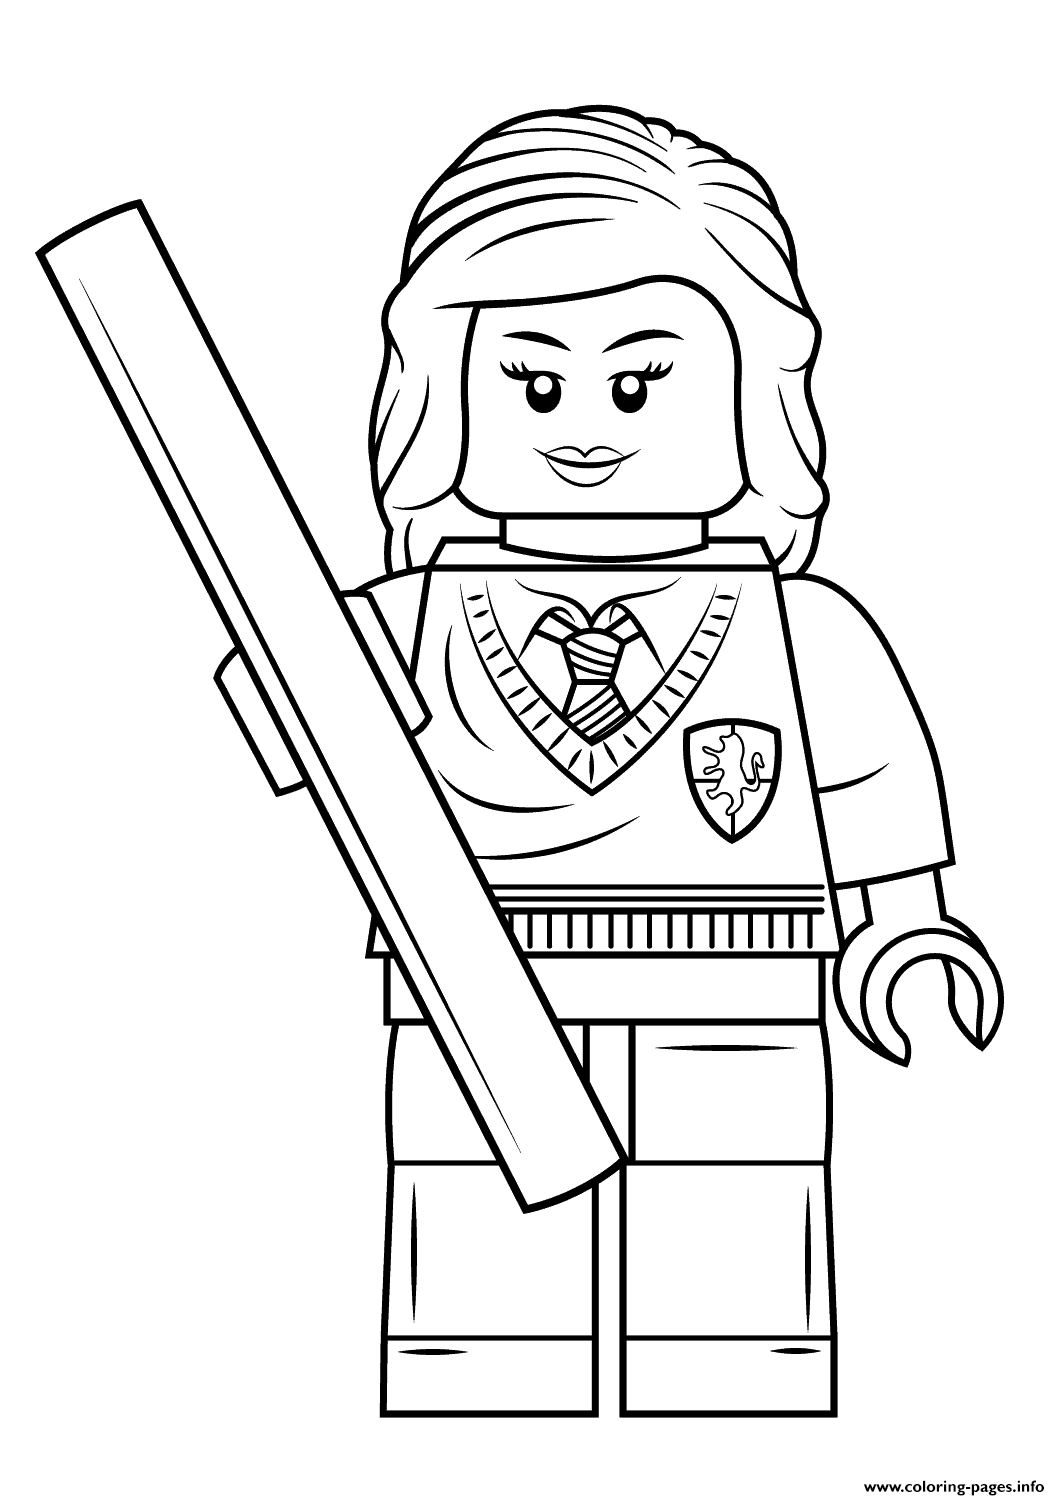 Free harry potter coloring pages printable for humorous competitive easy b 306 unknown image yourfdaconsultant com find here more than 10k unique